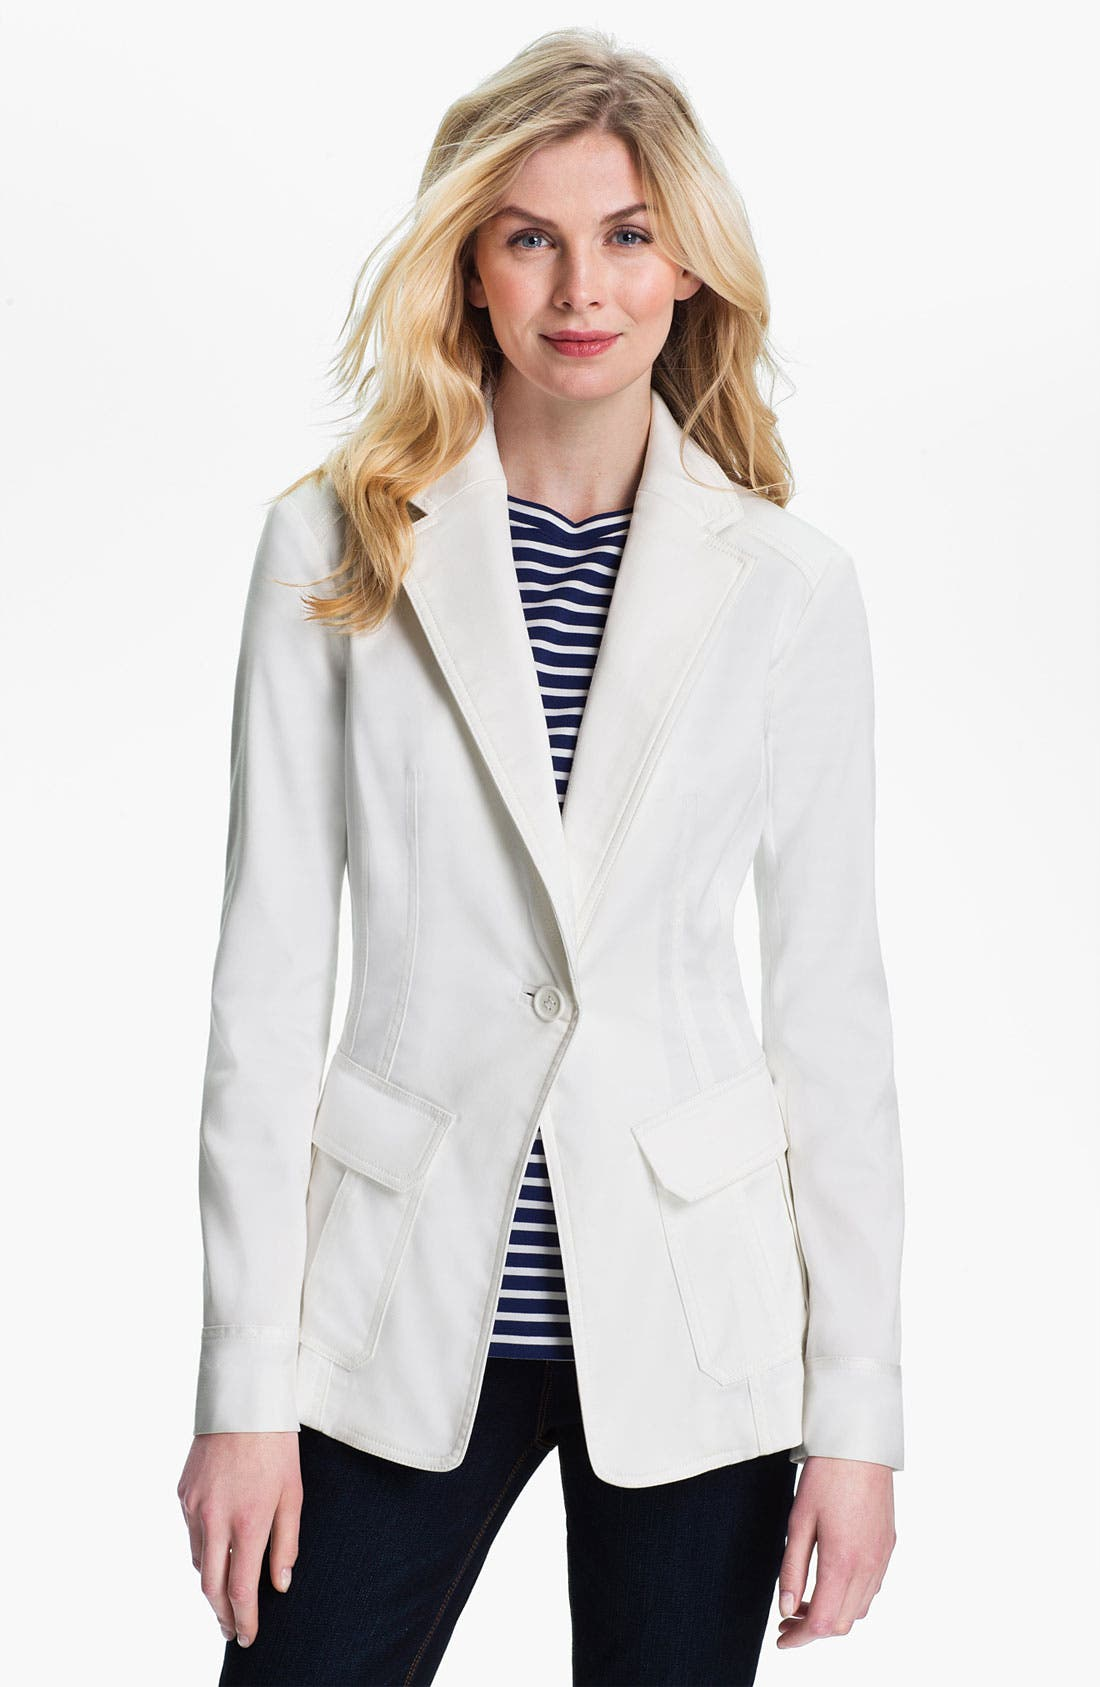 Alternate Image 1 Selected - Isaac Mizrahi Jeans 'Blair' Blazer (Online Exclusive)